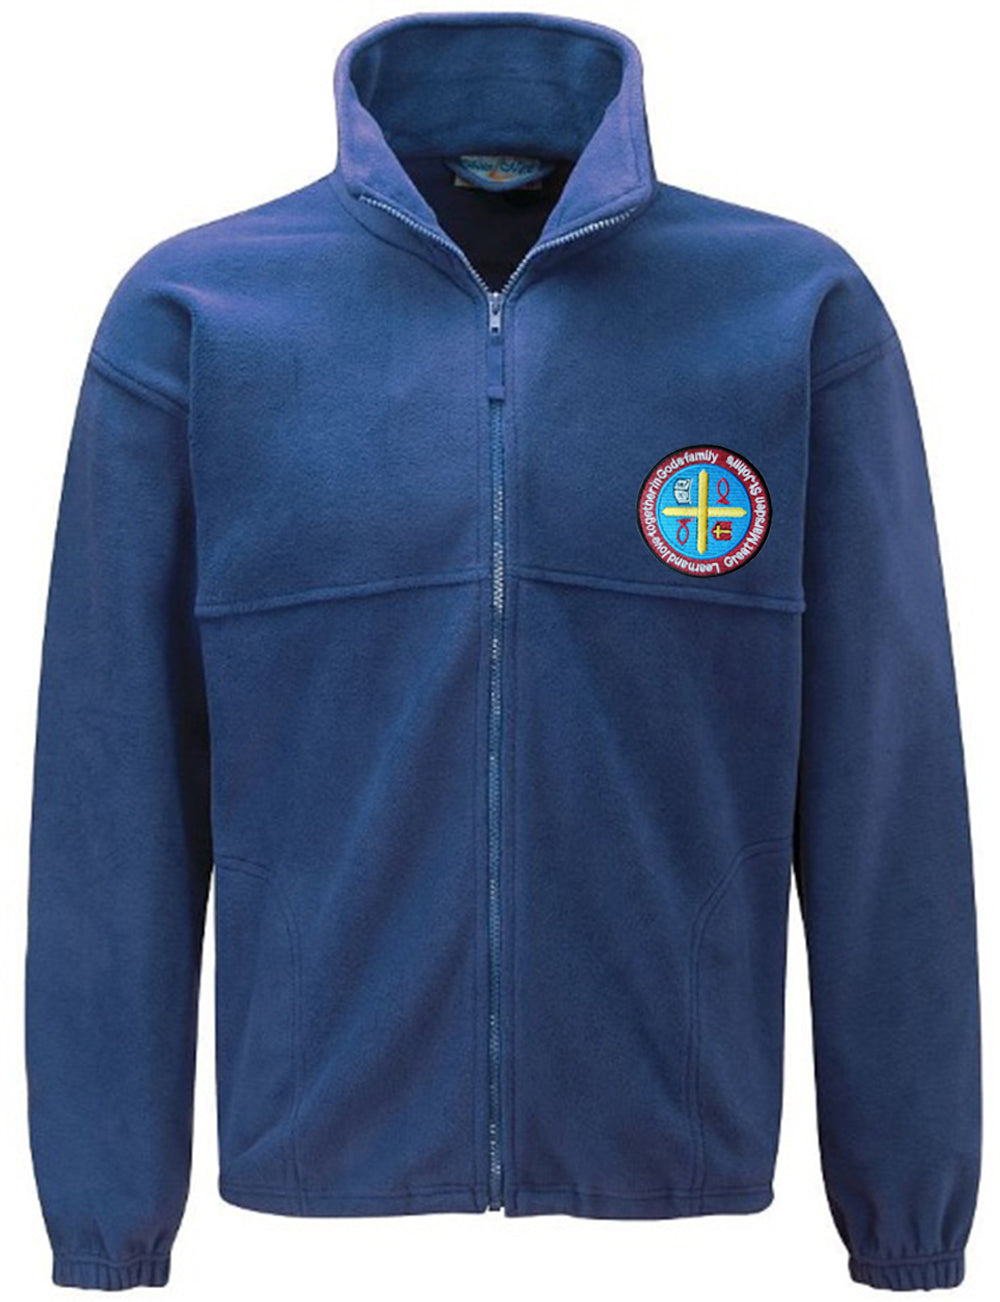 Saint John's Primary Fleece Jacket